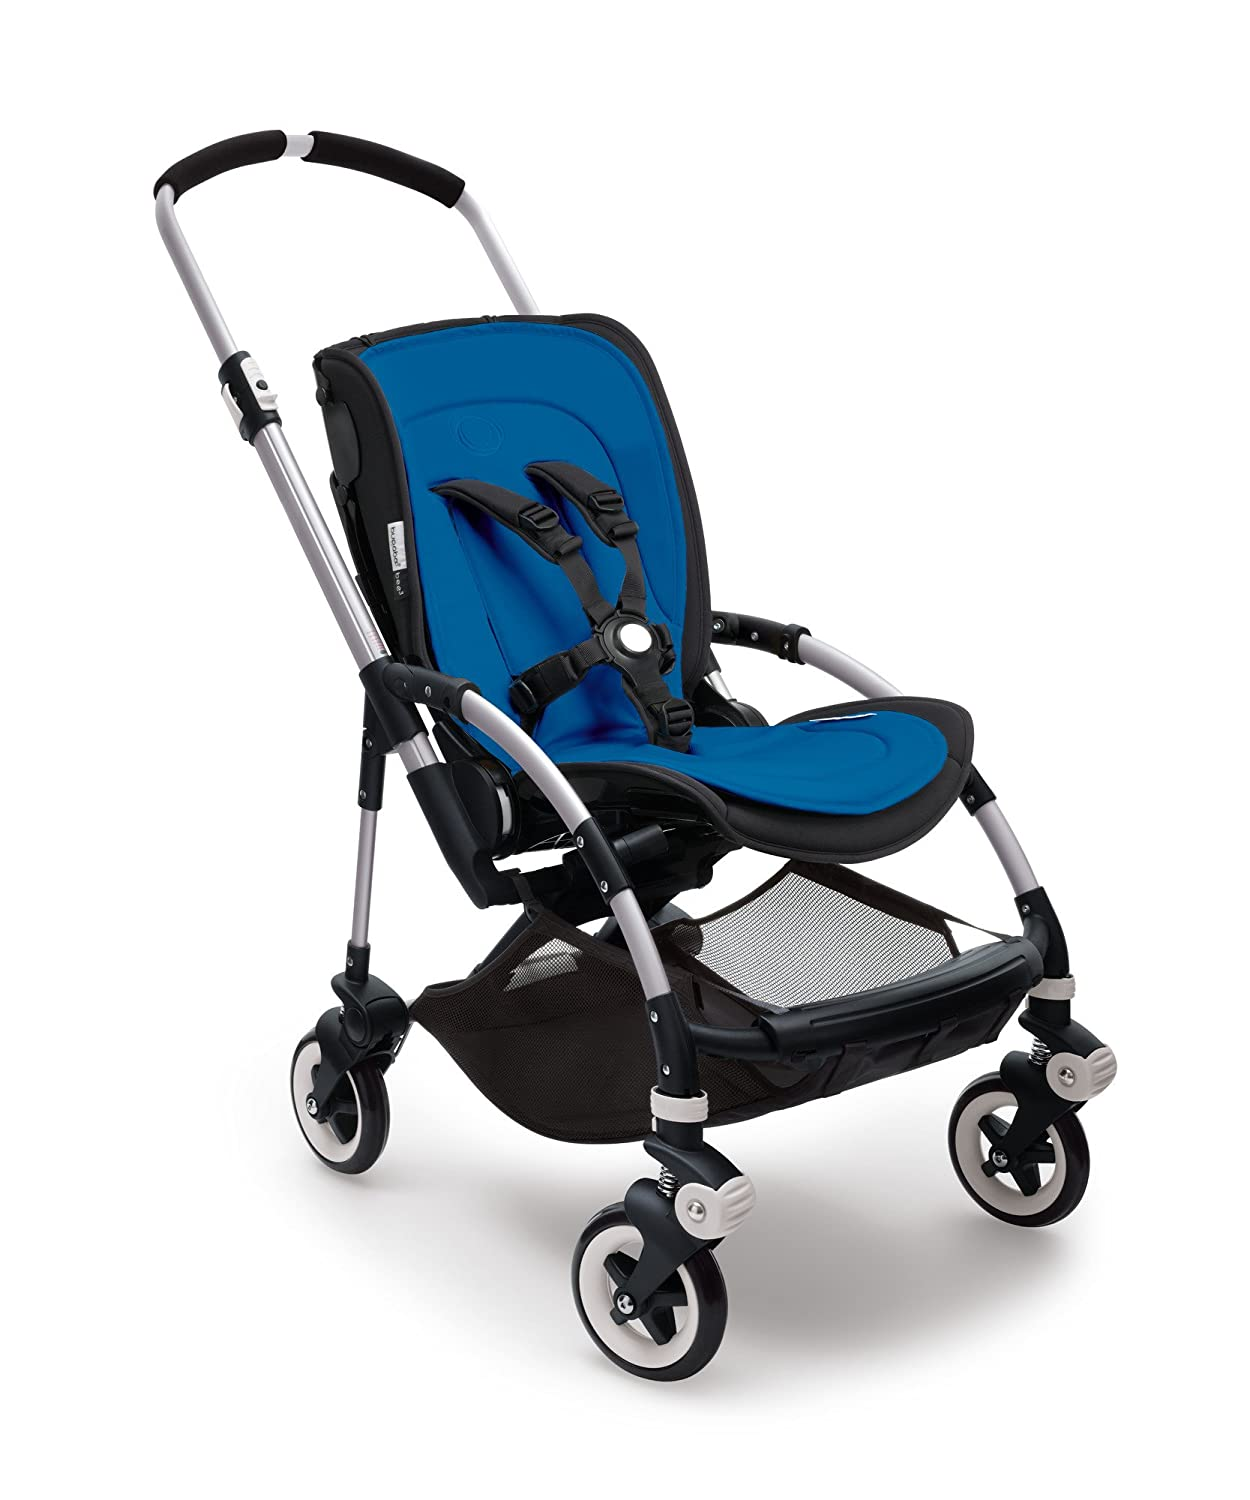 Bugaboo Seat Liner, Royal Blue